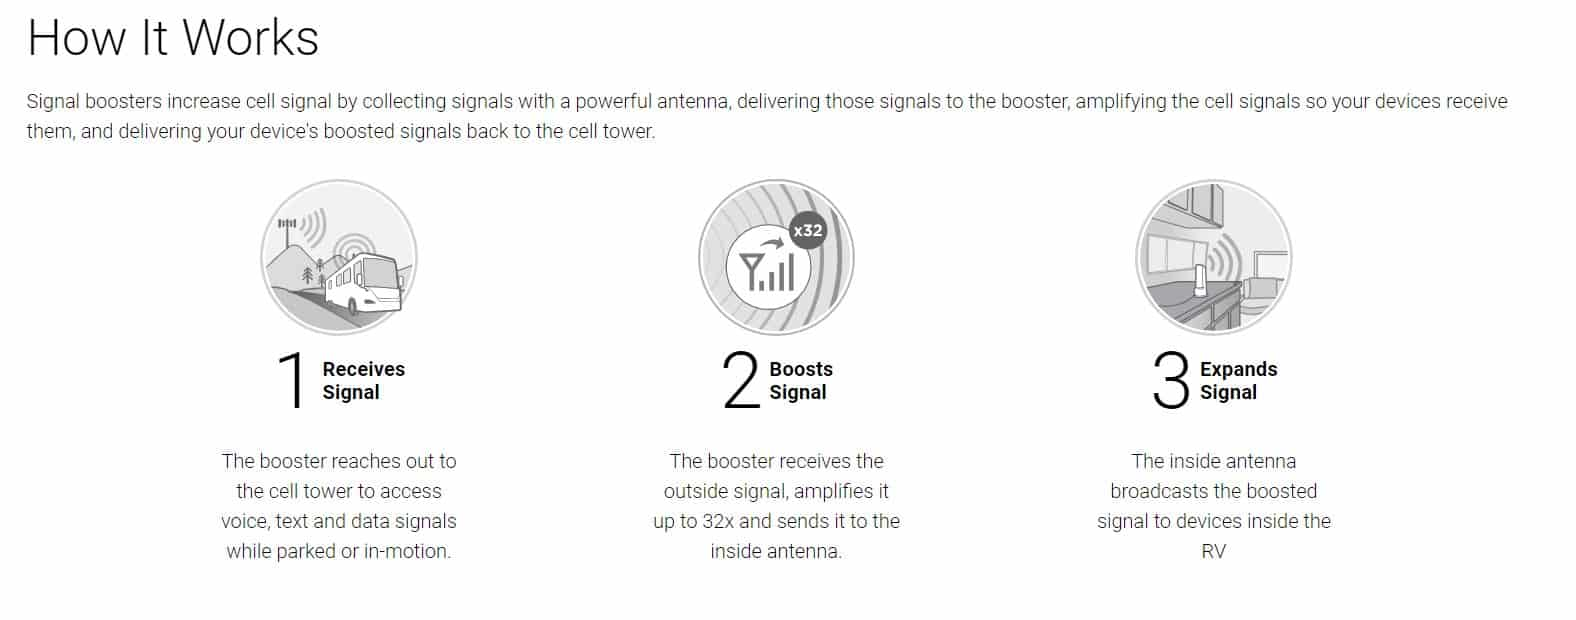 Infographic showing how a cell signal booster works